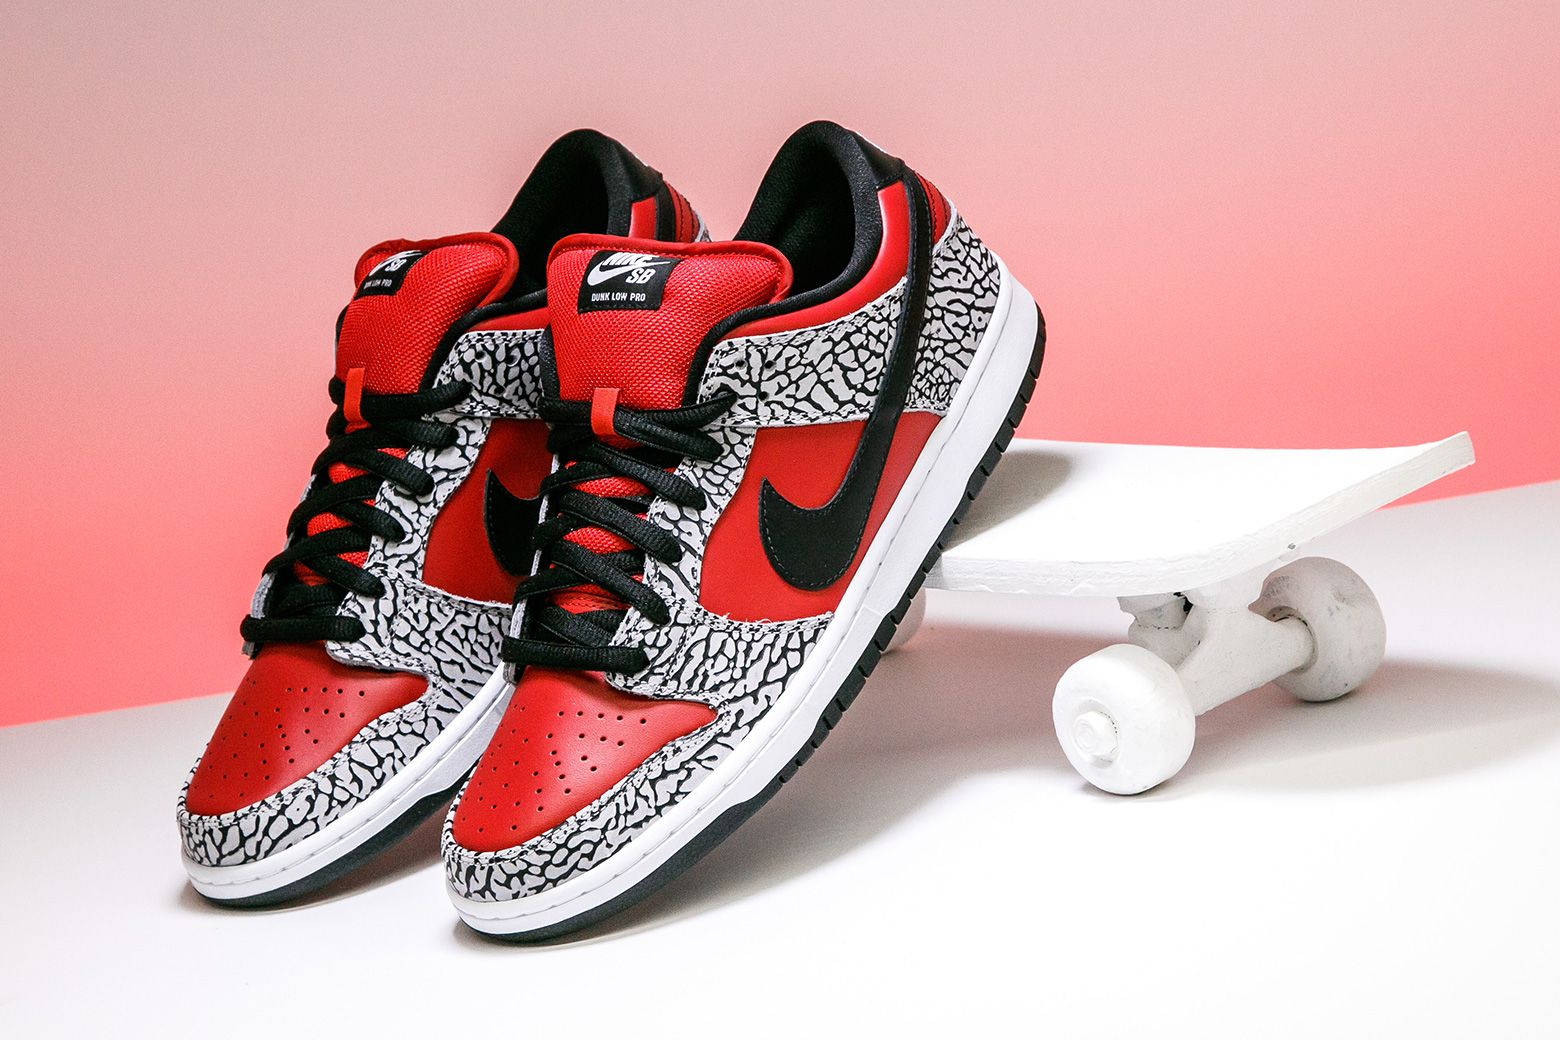 quality design aa5e2 85810 Rate the Supreme x Nike SB Dunk Low from 1 - 10. https